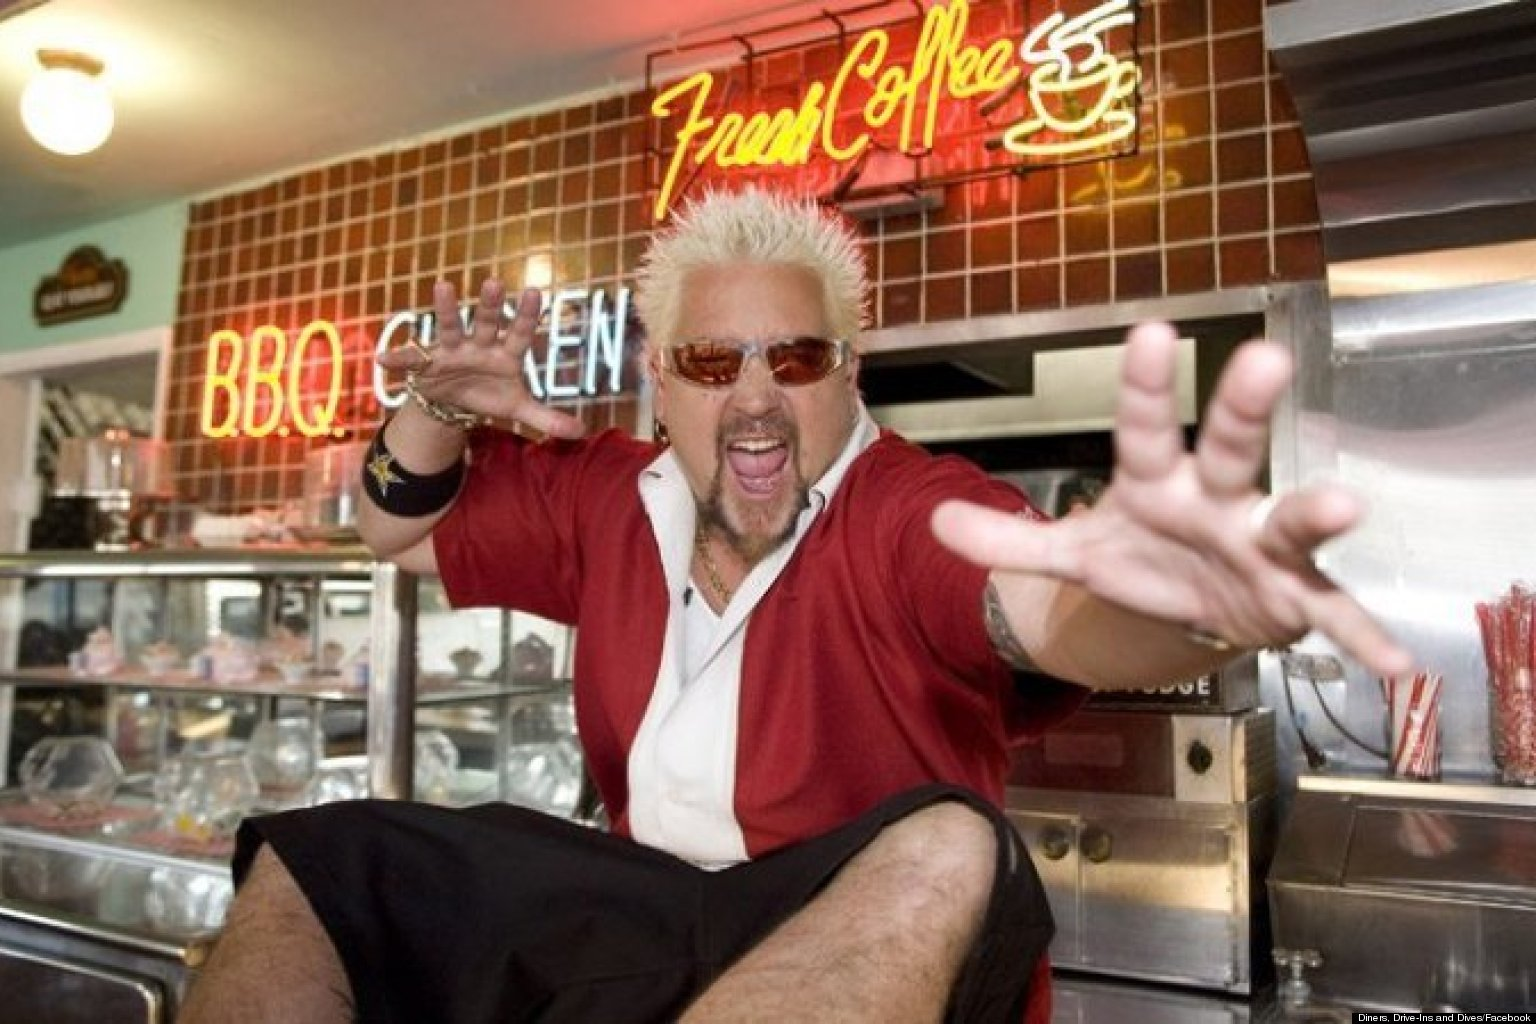 Diners Drive Ins and Dives Toronto Chef Guy Fieri Stops At The Ace Lakevie